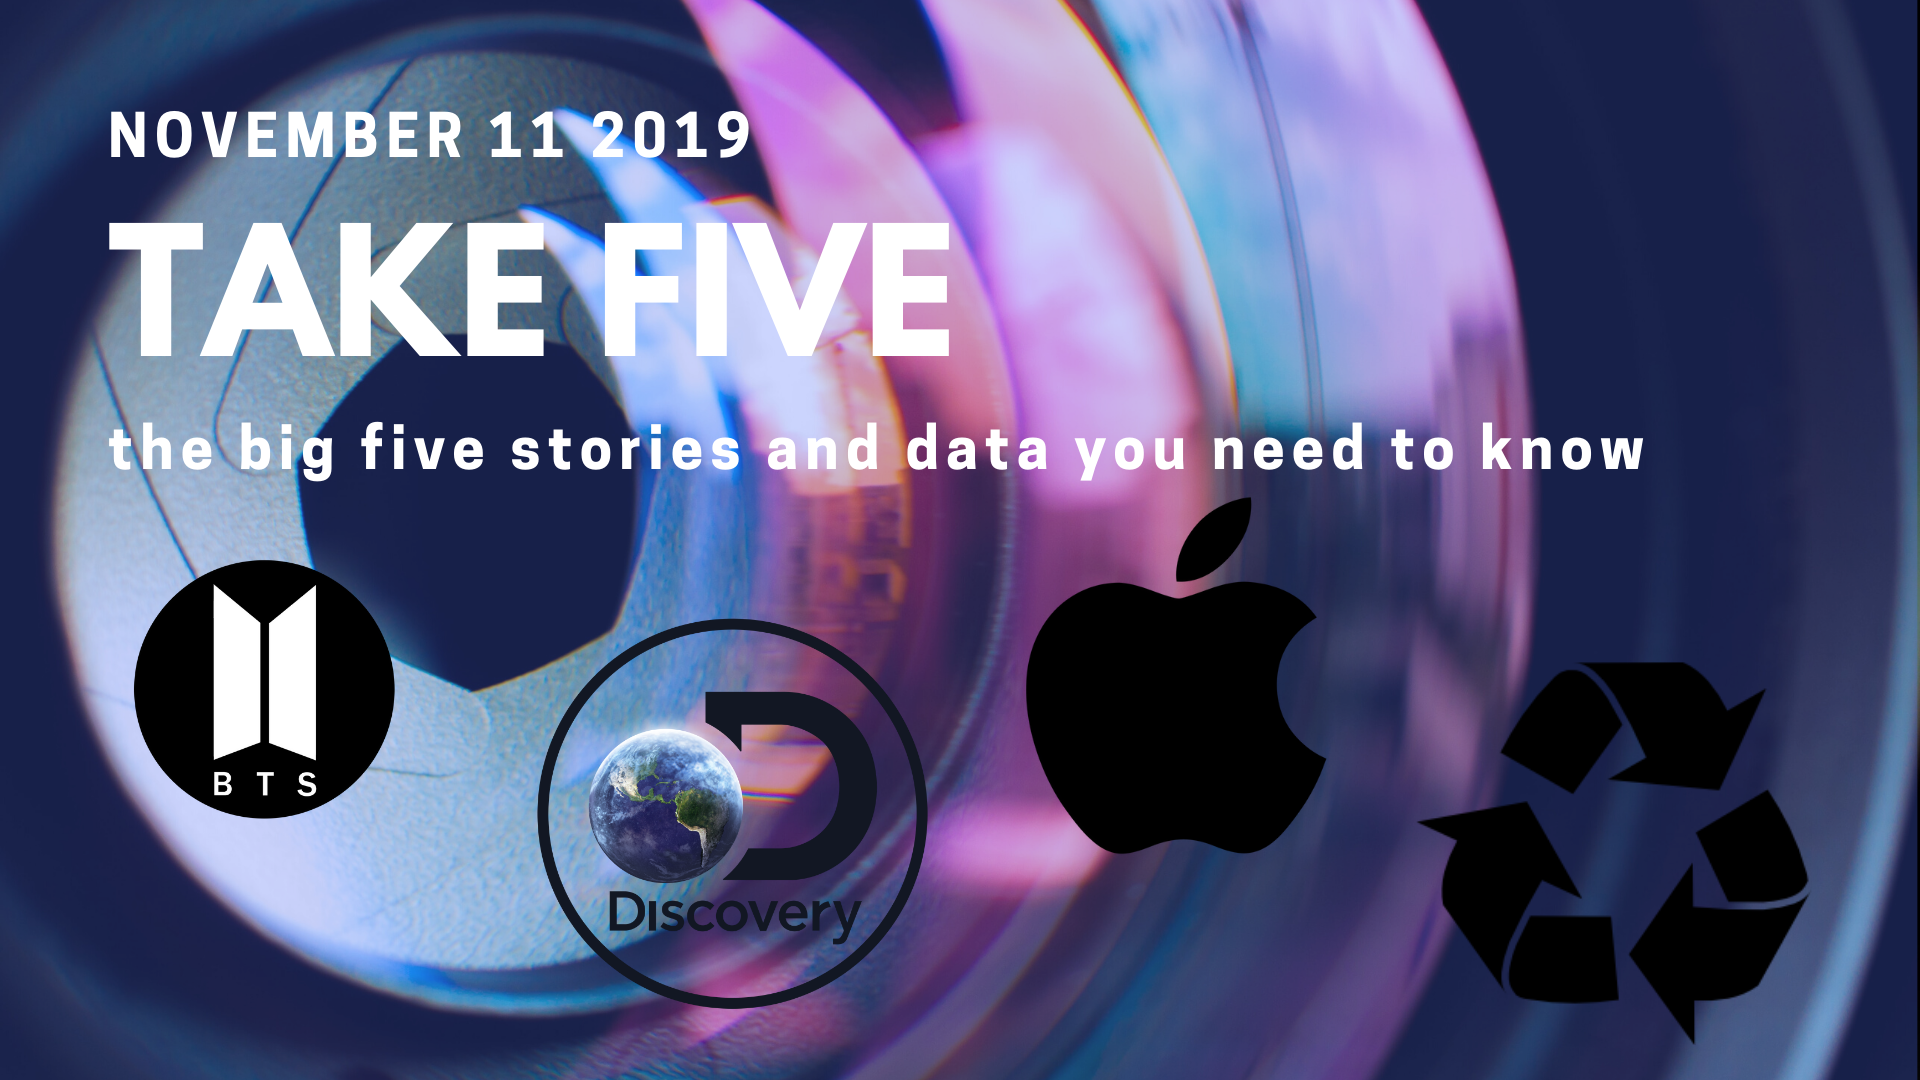 Cover image for Take Five (the big five stories and data you need to know) November 11th 2019